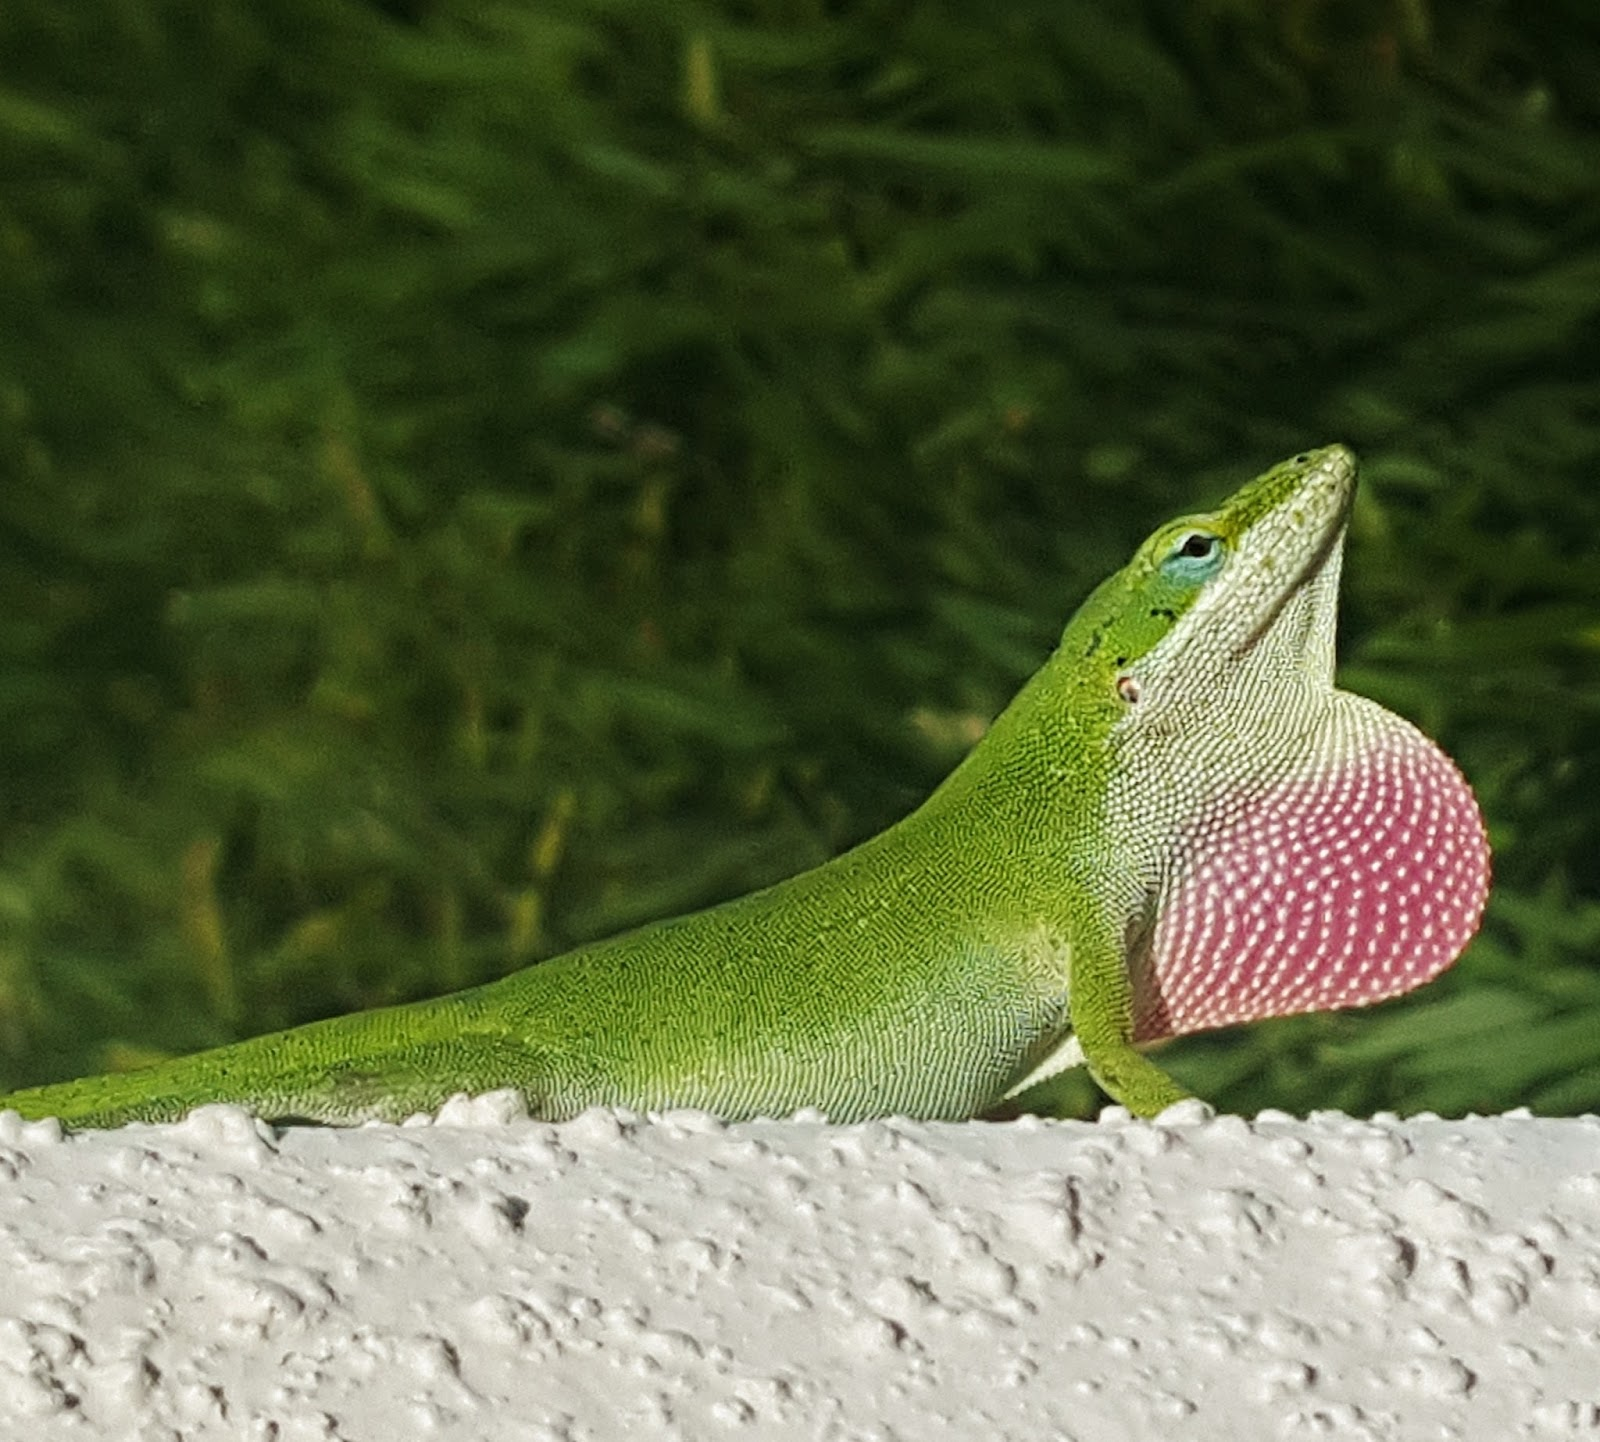 Amazing photo of the anole green lizard.